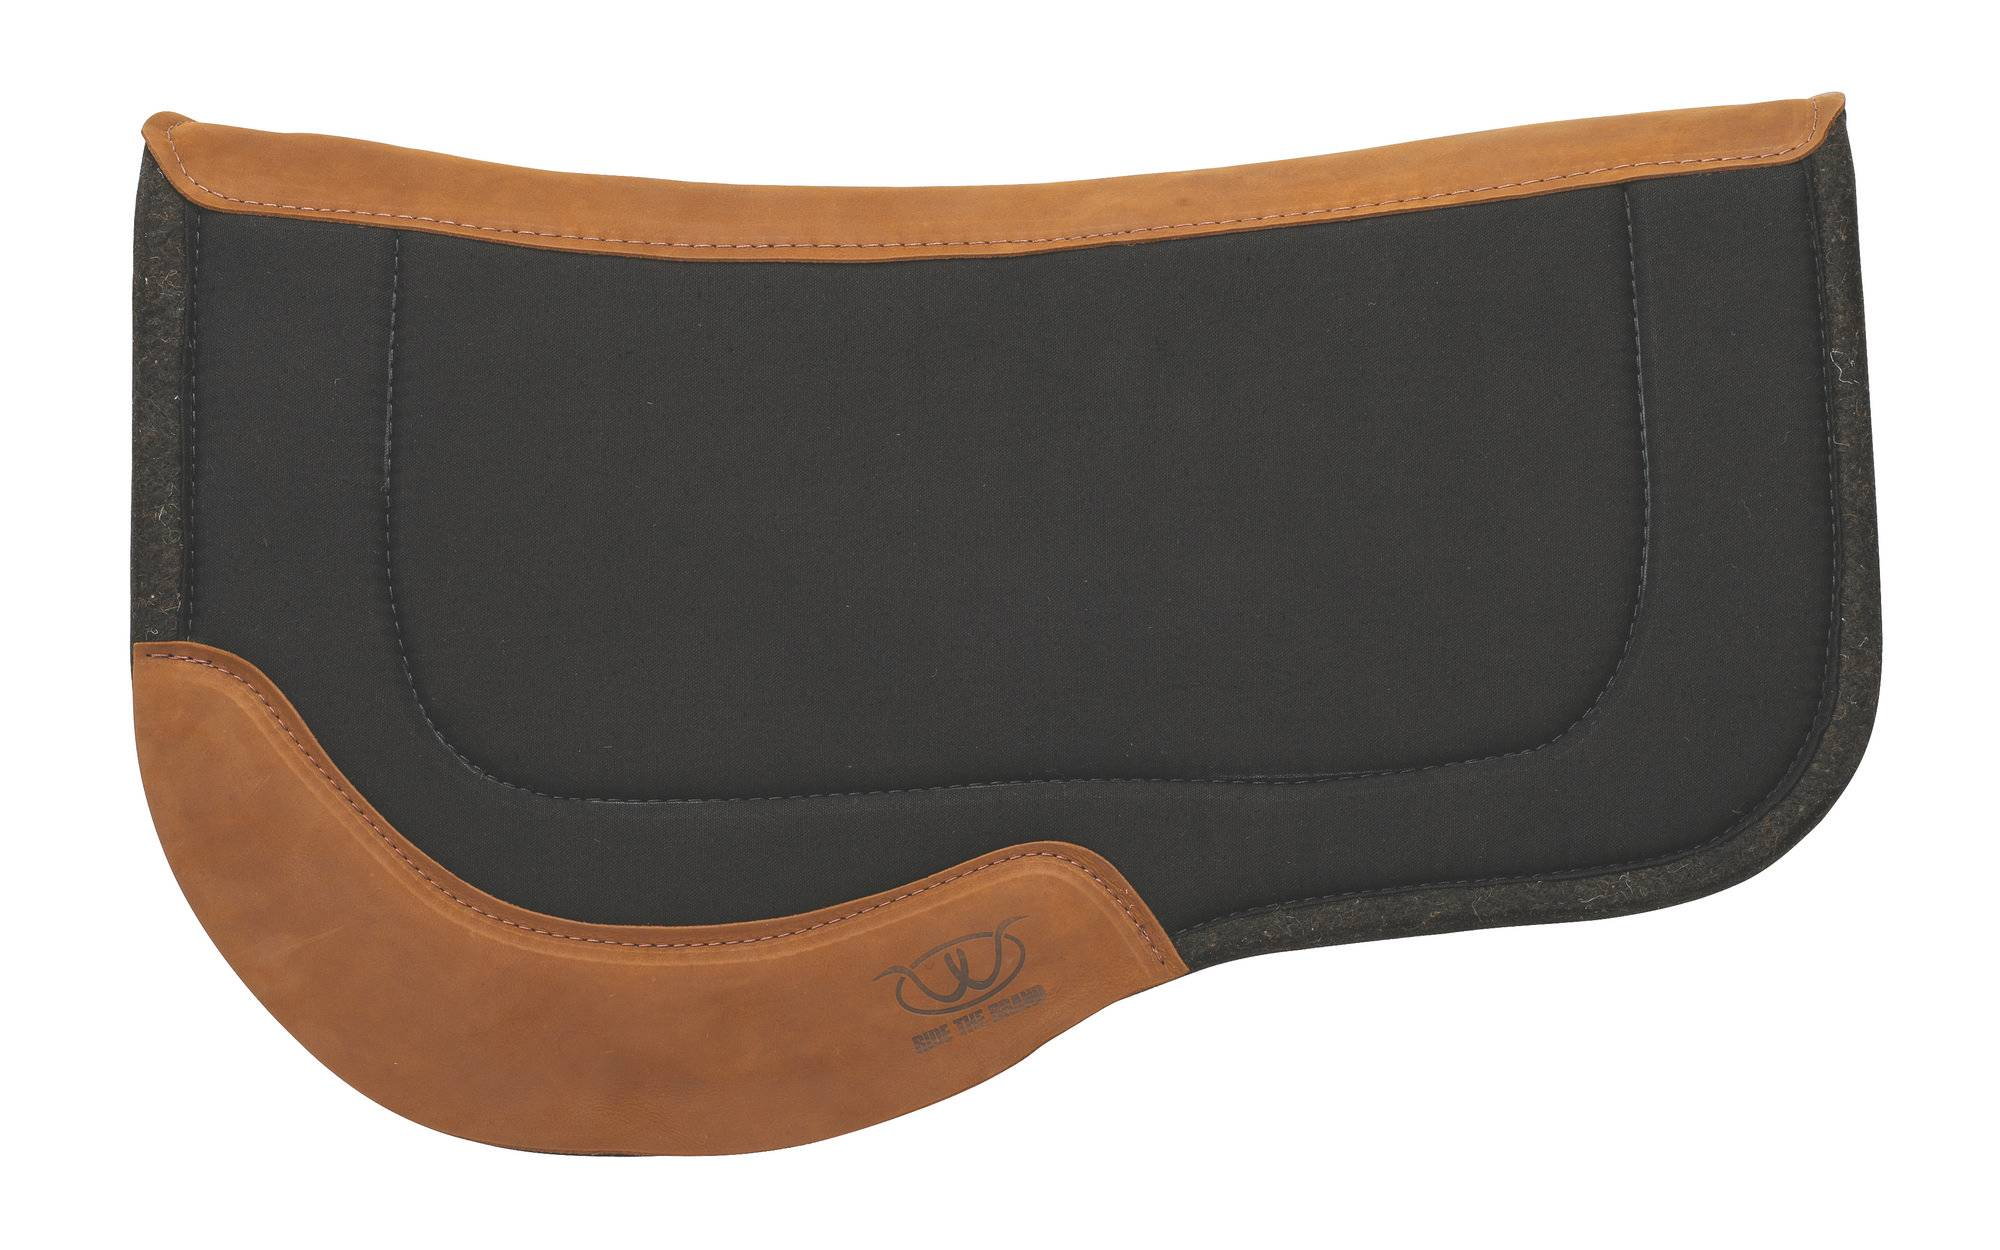 Weaver 29x34 Trail Gear Canvas Felt Bottom Saddle Pad - Solid Colors